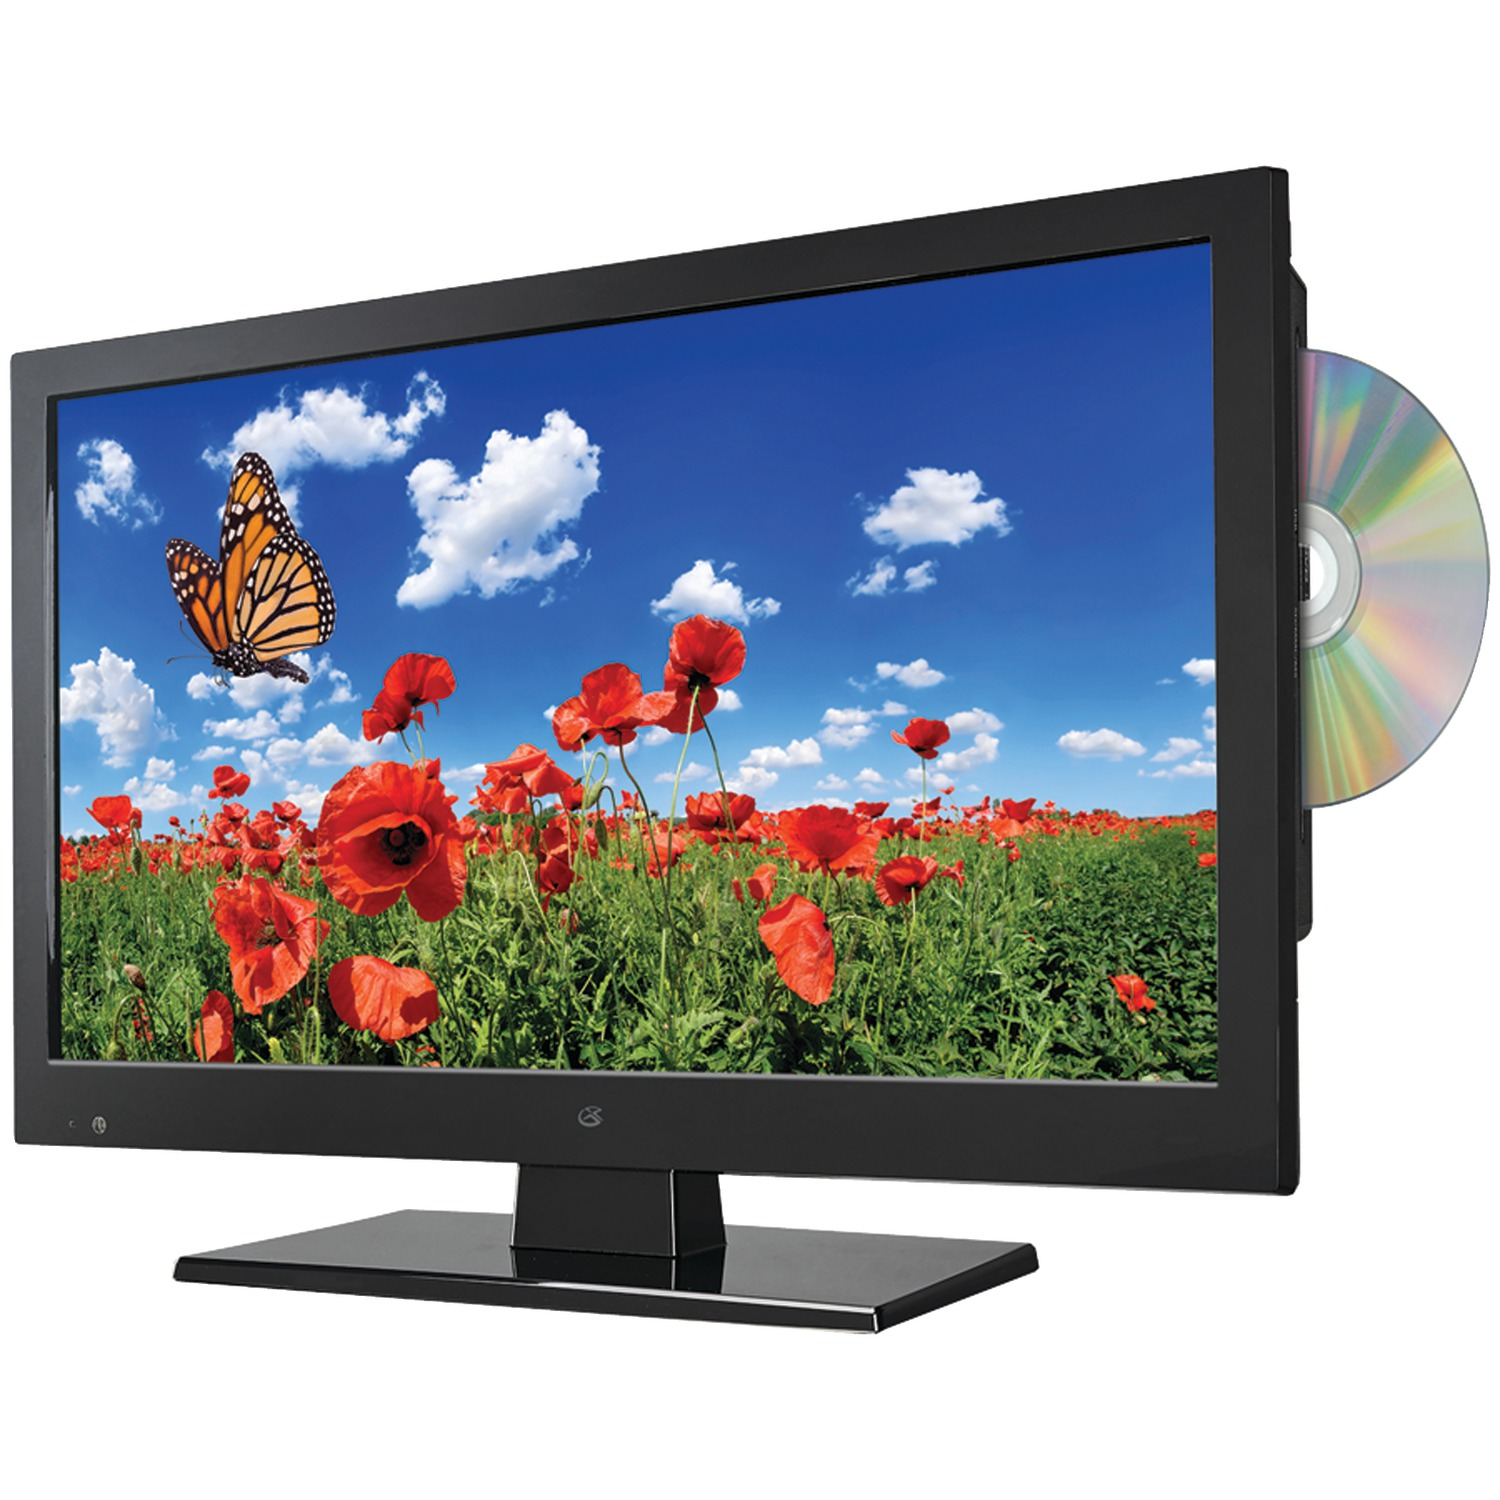 "GPX 15.6"" Class - HD, LED TV with DVD Player - 720p, 60Hz (TDE1587B)"